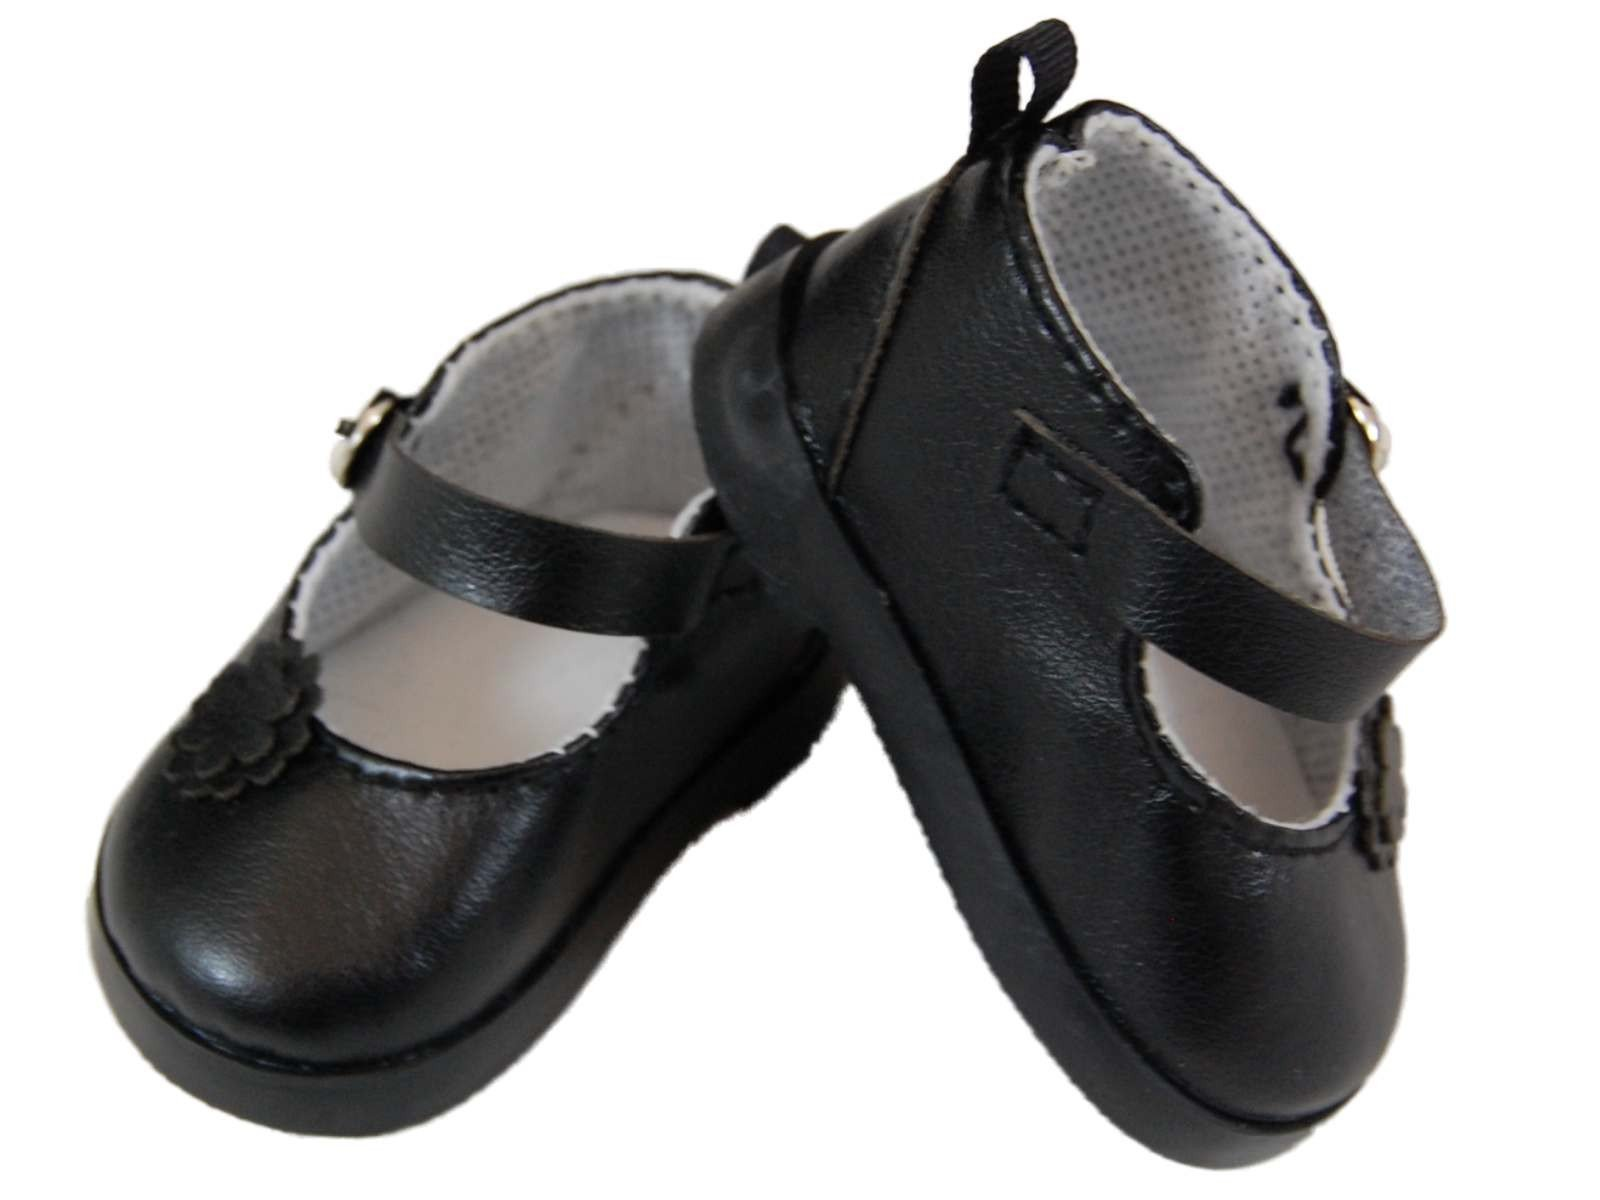 "Black Mary Janes Dress Shoes with Pearl Accents fit 18/"" American Girl Size Doll"